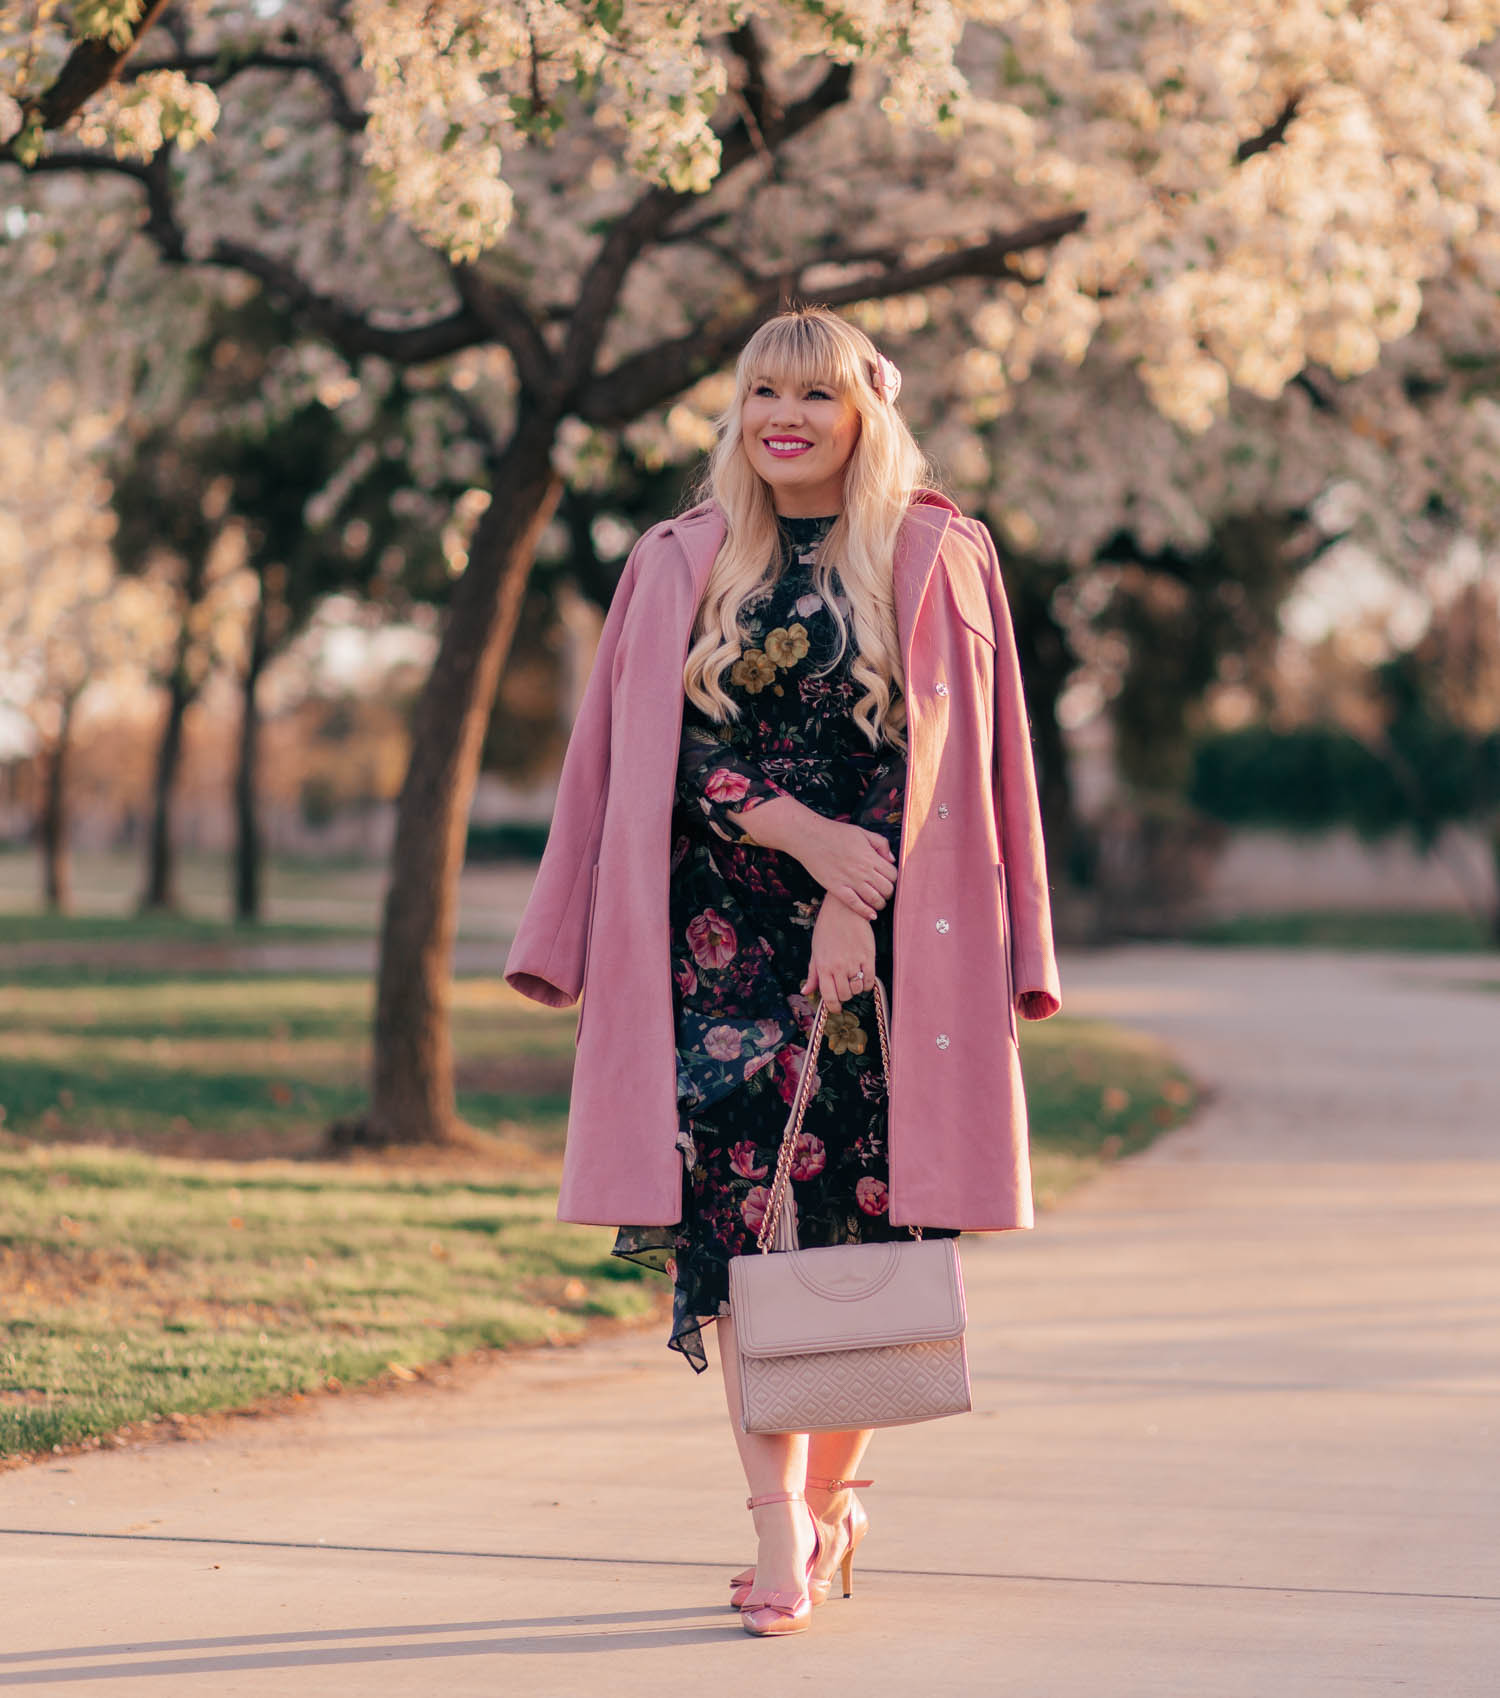 Elizabeth Hugen of Lizzie in Lace styles a black floral dress and shares fashion trends for petites